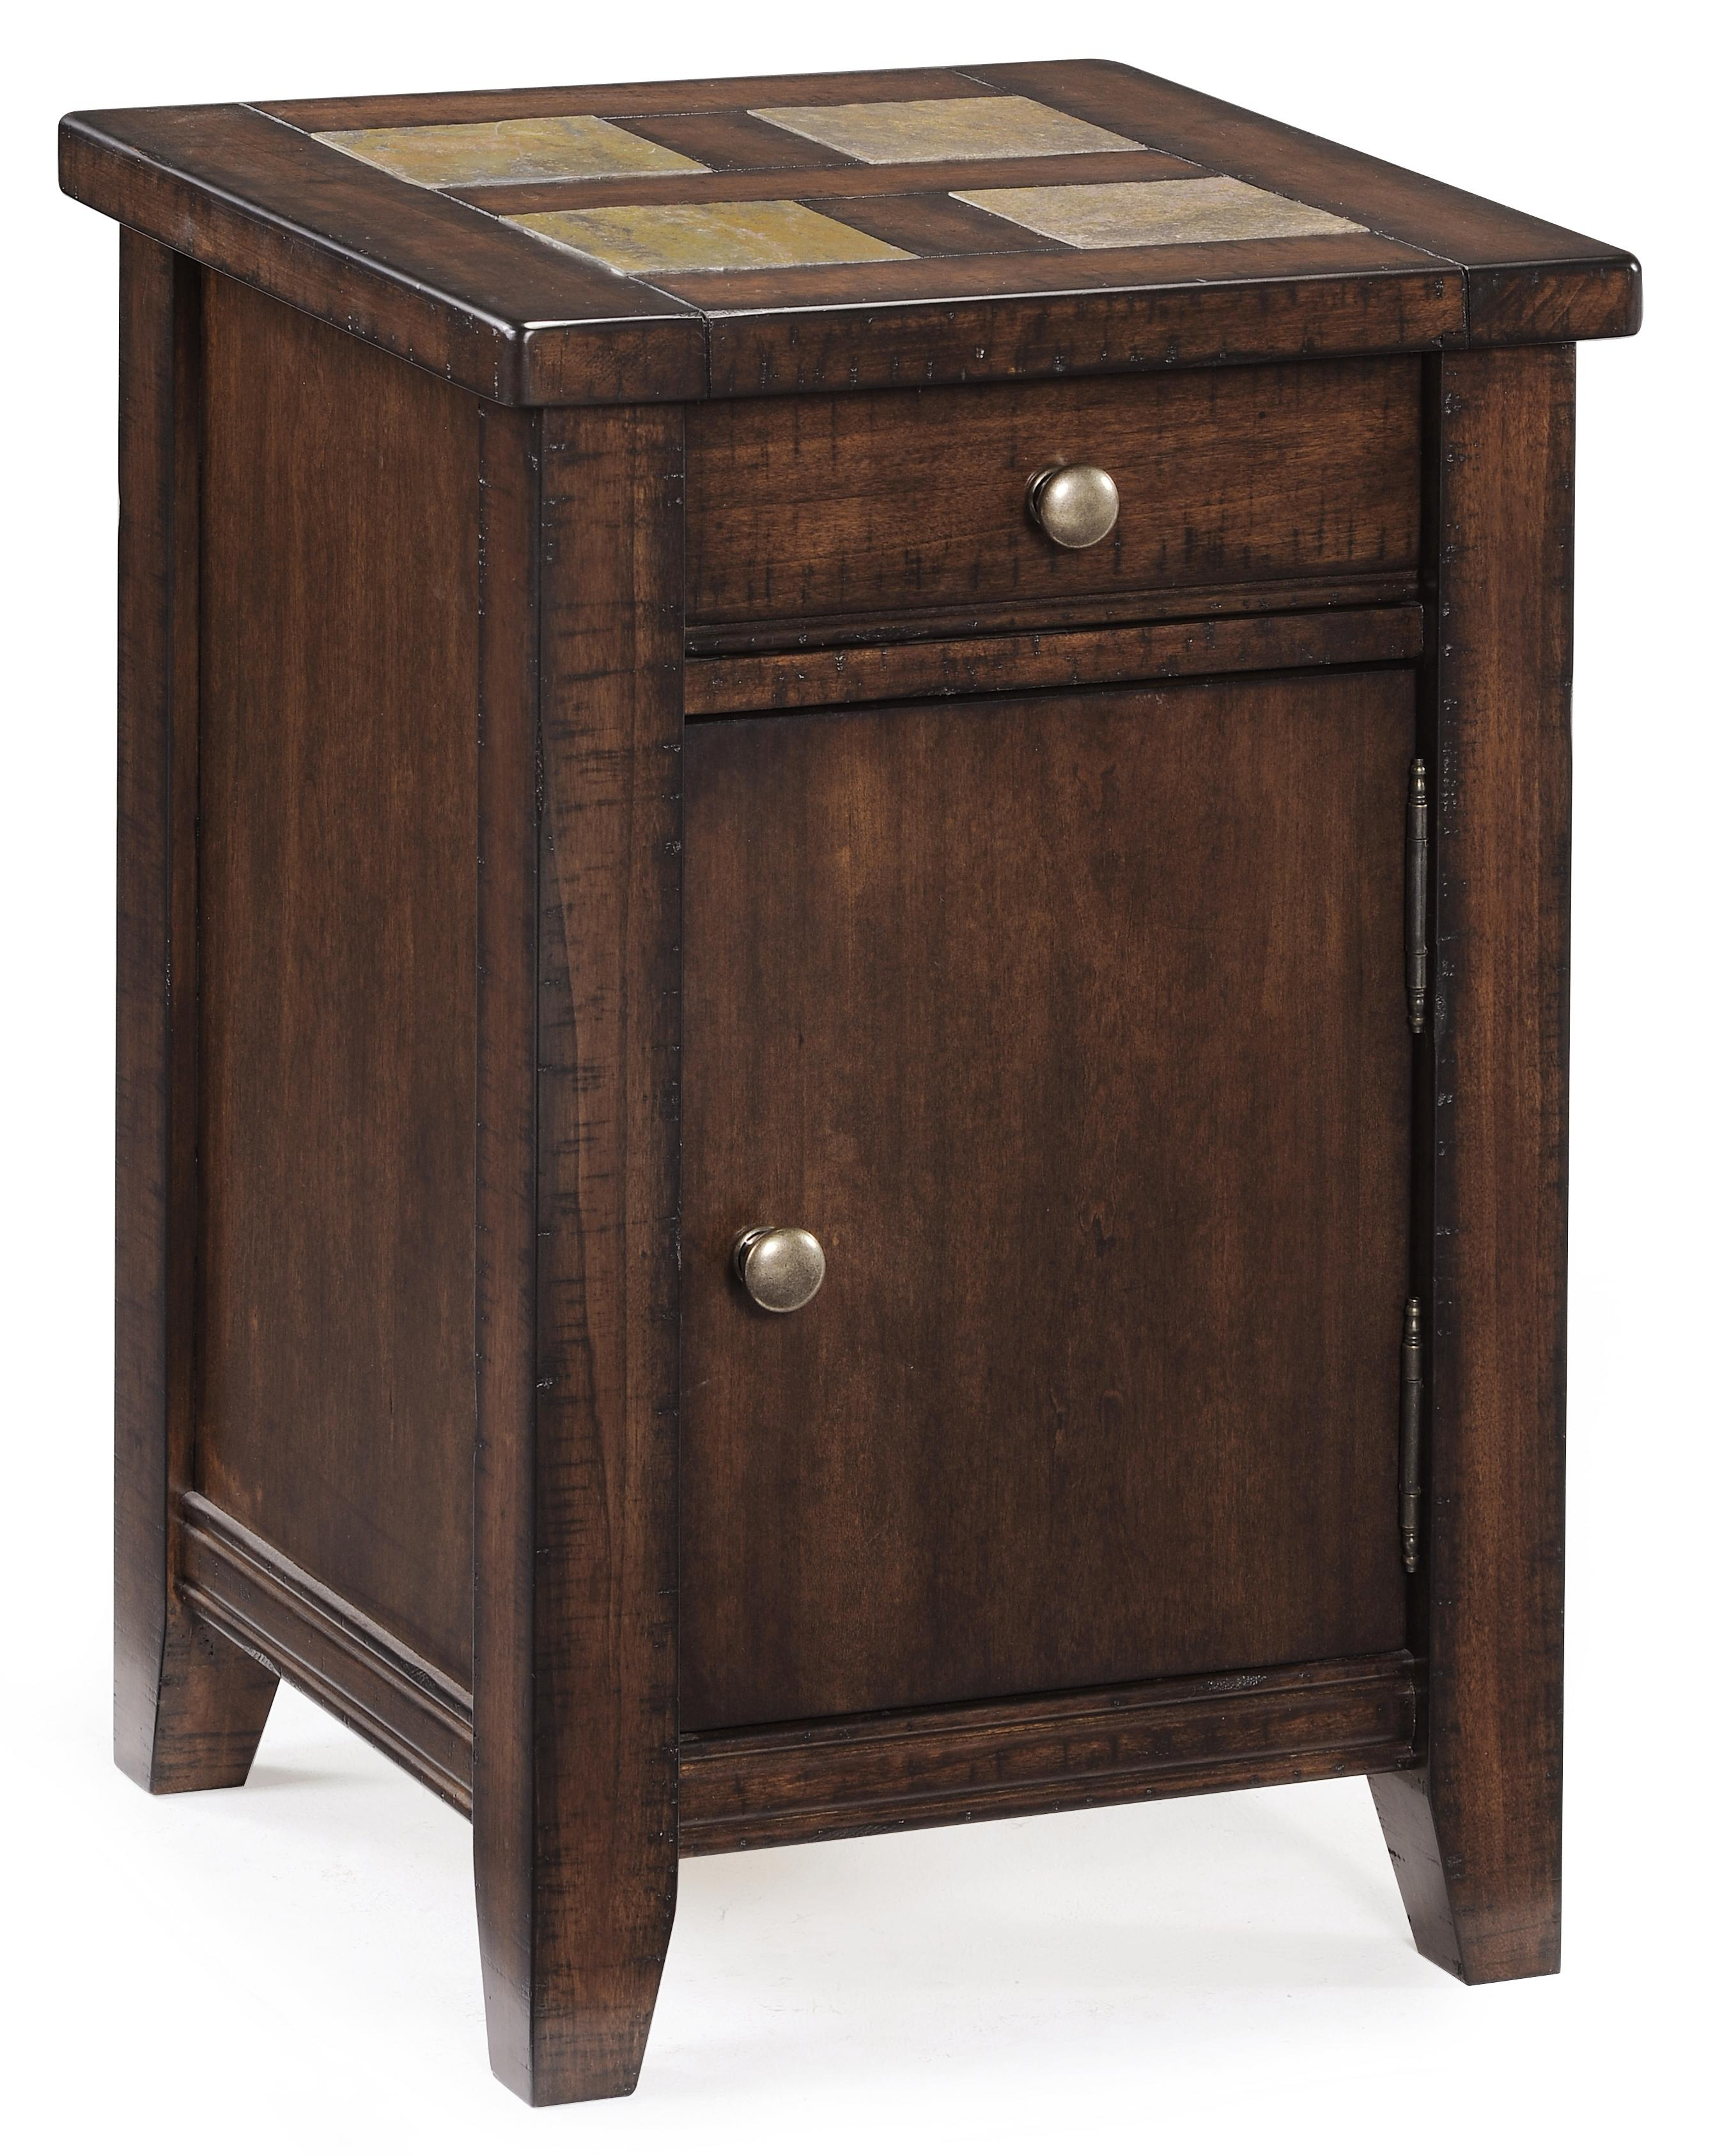 Allister Square Accent Cabinet by Magnussen Home at Baer's Furniture